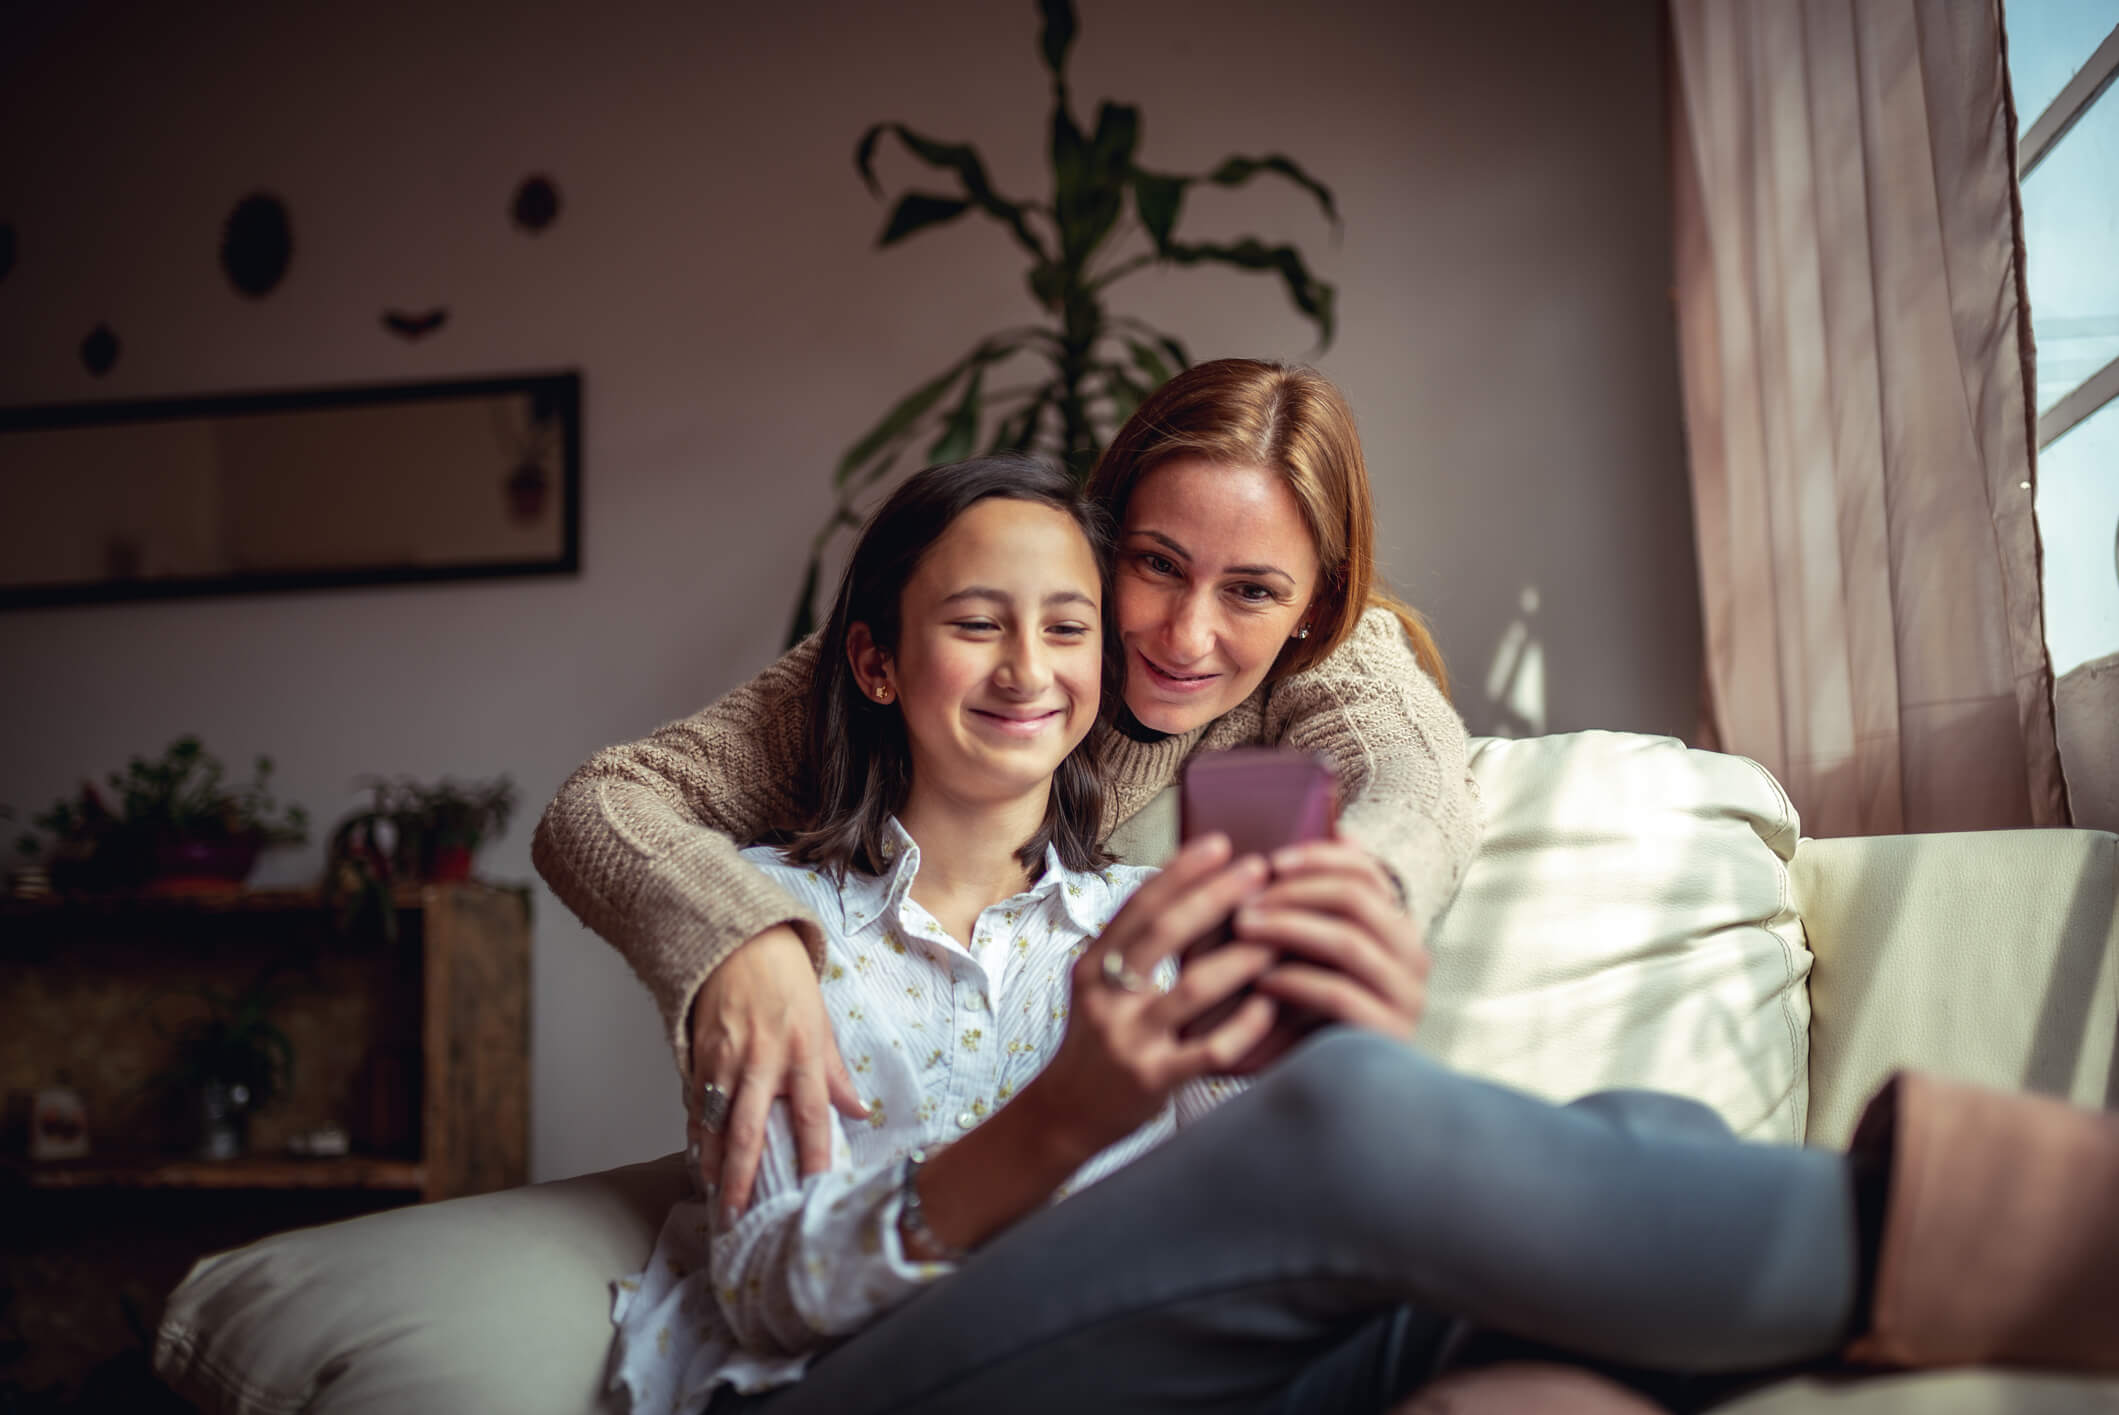 Mom and Daughter Using a Phone